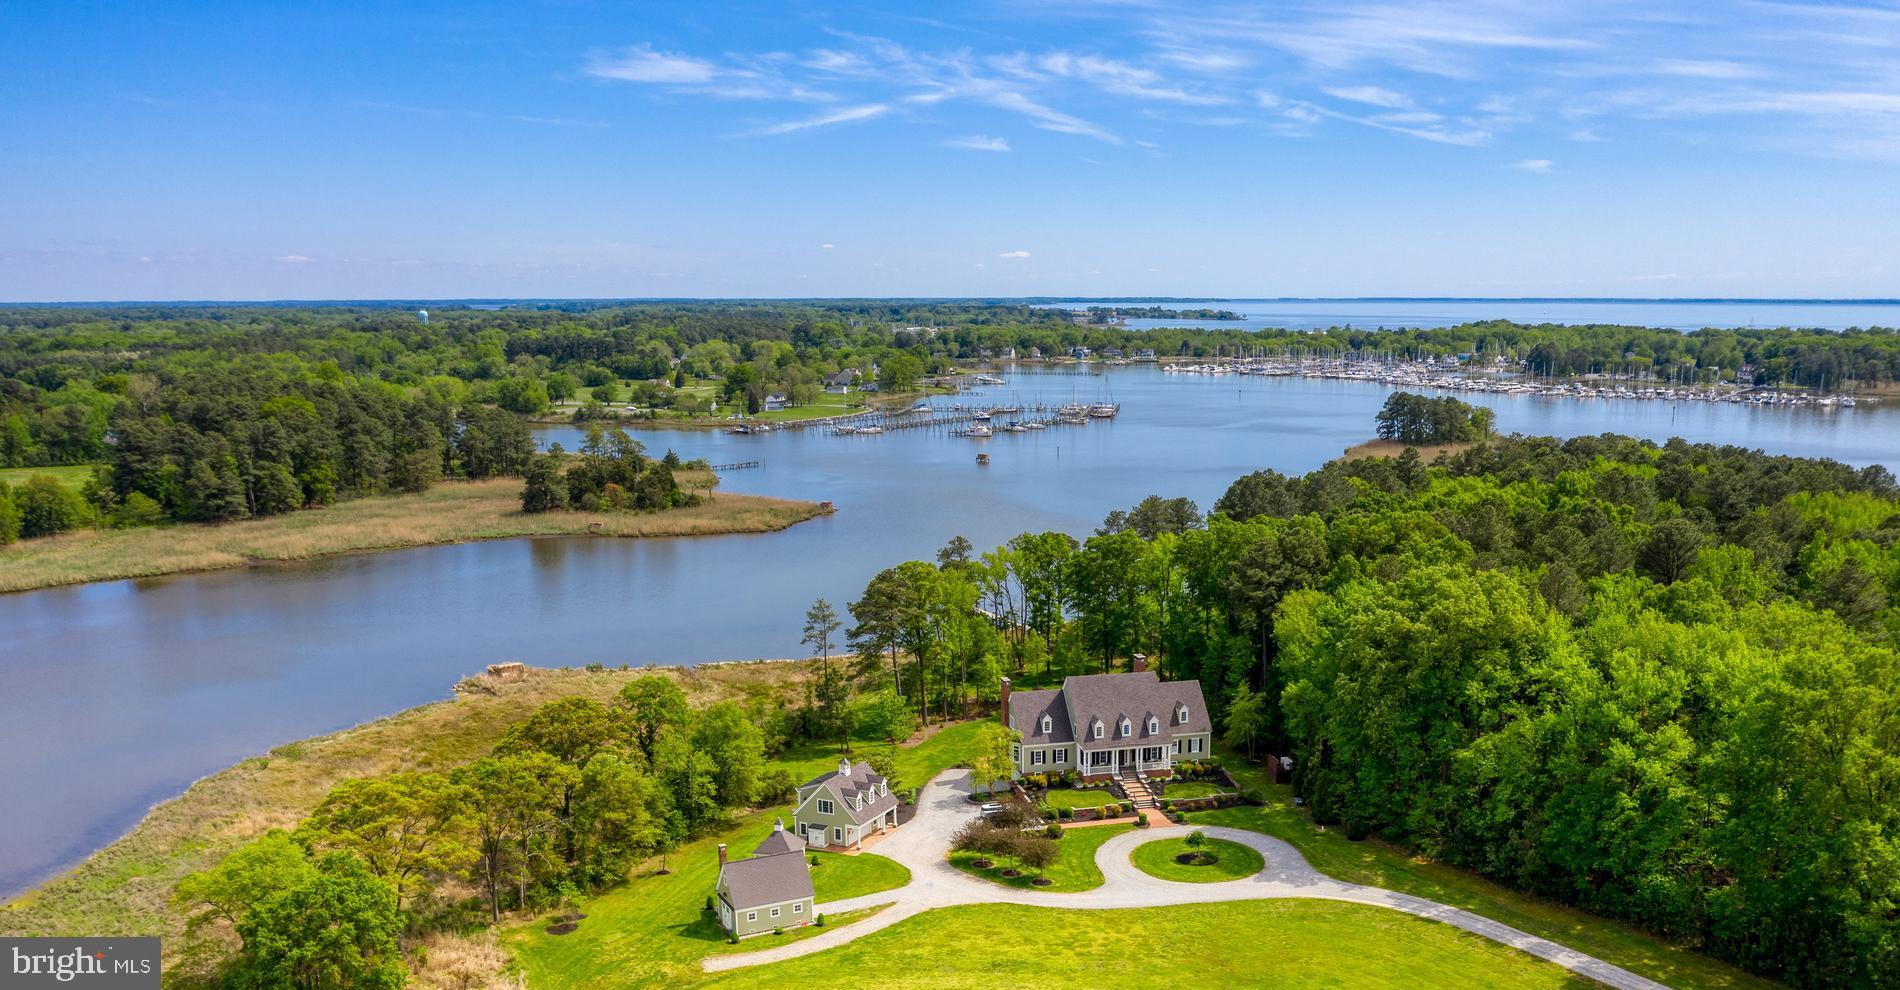 You will immediately notice the exceptional quality of design as you approach the circular drive and the majestic terraced entrance for this stately residence, which beautifully blends all the best features of a classic Eastern Shore lifestyle.  Comprised of two waterfront parcels, a total of 100 acres, providing an epic hunting location and/or simply a private natural setting with an abundunce of deer, ducks, herons, eagles, turkeys, fox and much more...  The home is situated on protected Swan Haven, and  has been constructed with meticulous attention to every detail.  With approximately 5,000 square feet, there is an easy open flow into the formal dining room, the gourmet kitchen with casual dining space, an elegant living room with a beautiful fireplace, and an expansive game room with the feel of a modern hunting lodge - bright and airy, yet with a nod to old-world tradition, complete with a wet bar and another breathtaking wood burning fireplace. The sumptuous primary bedroom and bath are also located on the first floor. The second floor has four bedrooms and three more full baths.  The main residence has a full basement and an attached garage and is surrounded by extensive landscaping, leading to a tranquil gunite pool.  A favorite spot is the brick patio area, designed with the same impeccable attention to detail,  with ample seating space and a large outdoor fireplace, perfect for entertaining by the pool or enjoying cool fall evenings.  Everything is oriented to the iconic waterfront views of Swan Creek, which affords easy access within just a few minutes to the mouth of the Chesapeake Bay, and is beautiful during any season, all year long.  Keep your boat at the private dock and enjoy an afternoon of crabbing or fishing, or enjoy a short ride on the creek, passing four marinas along the way to Rock Hall and the bay. There are four additional accessory buildings, including a garage with a guest apartment on the second level. All buildings were designed with